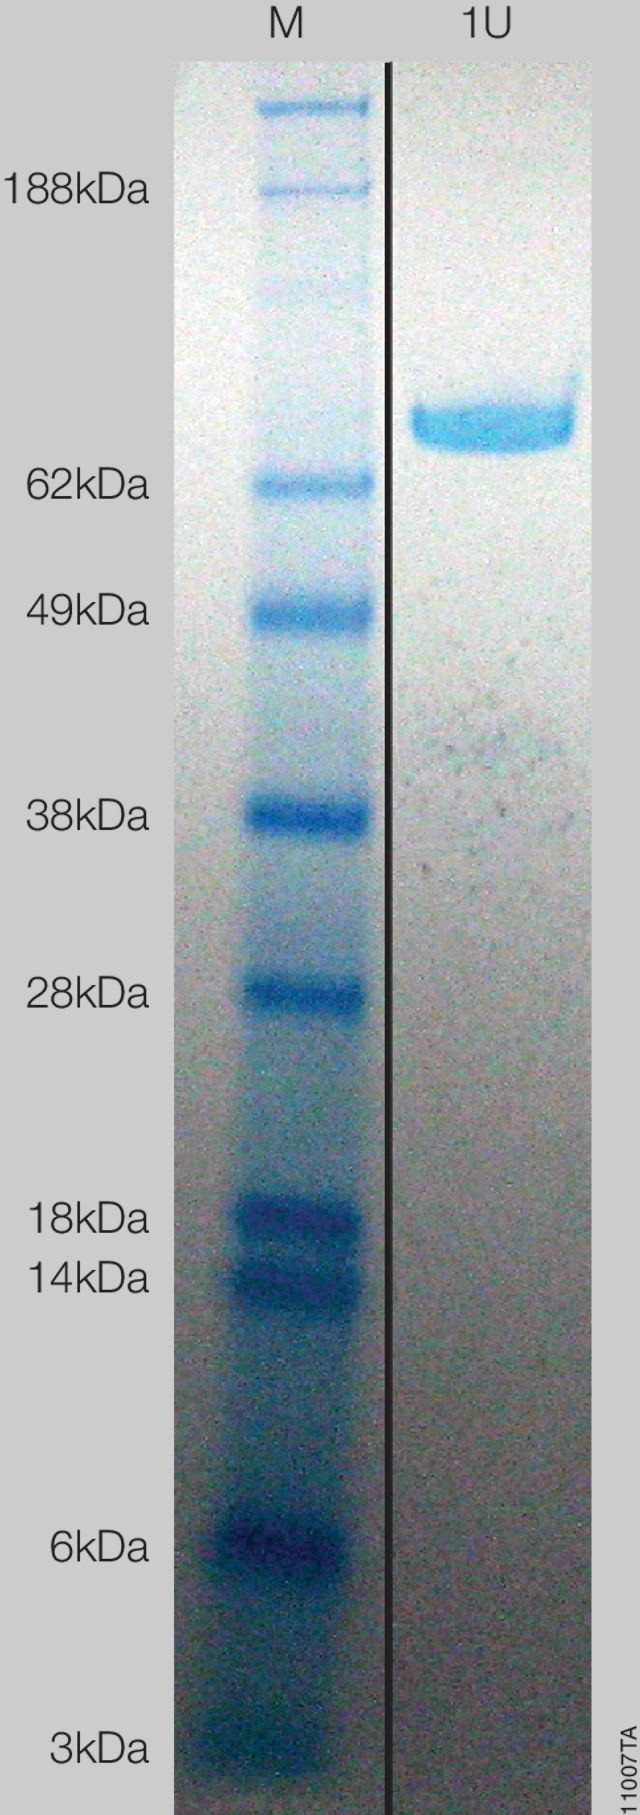 Coomassie®-stained gel of HaloTEV Protease showing 1 unit (U) of protein with the specific activity of 1 unit/µg.